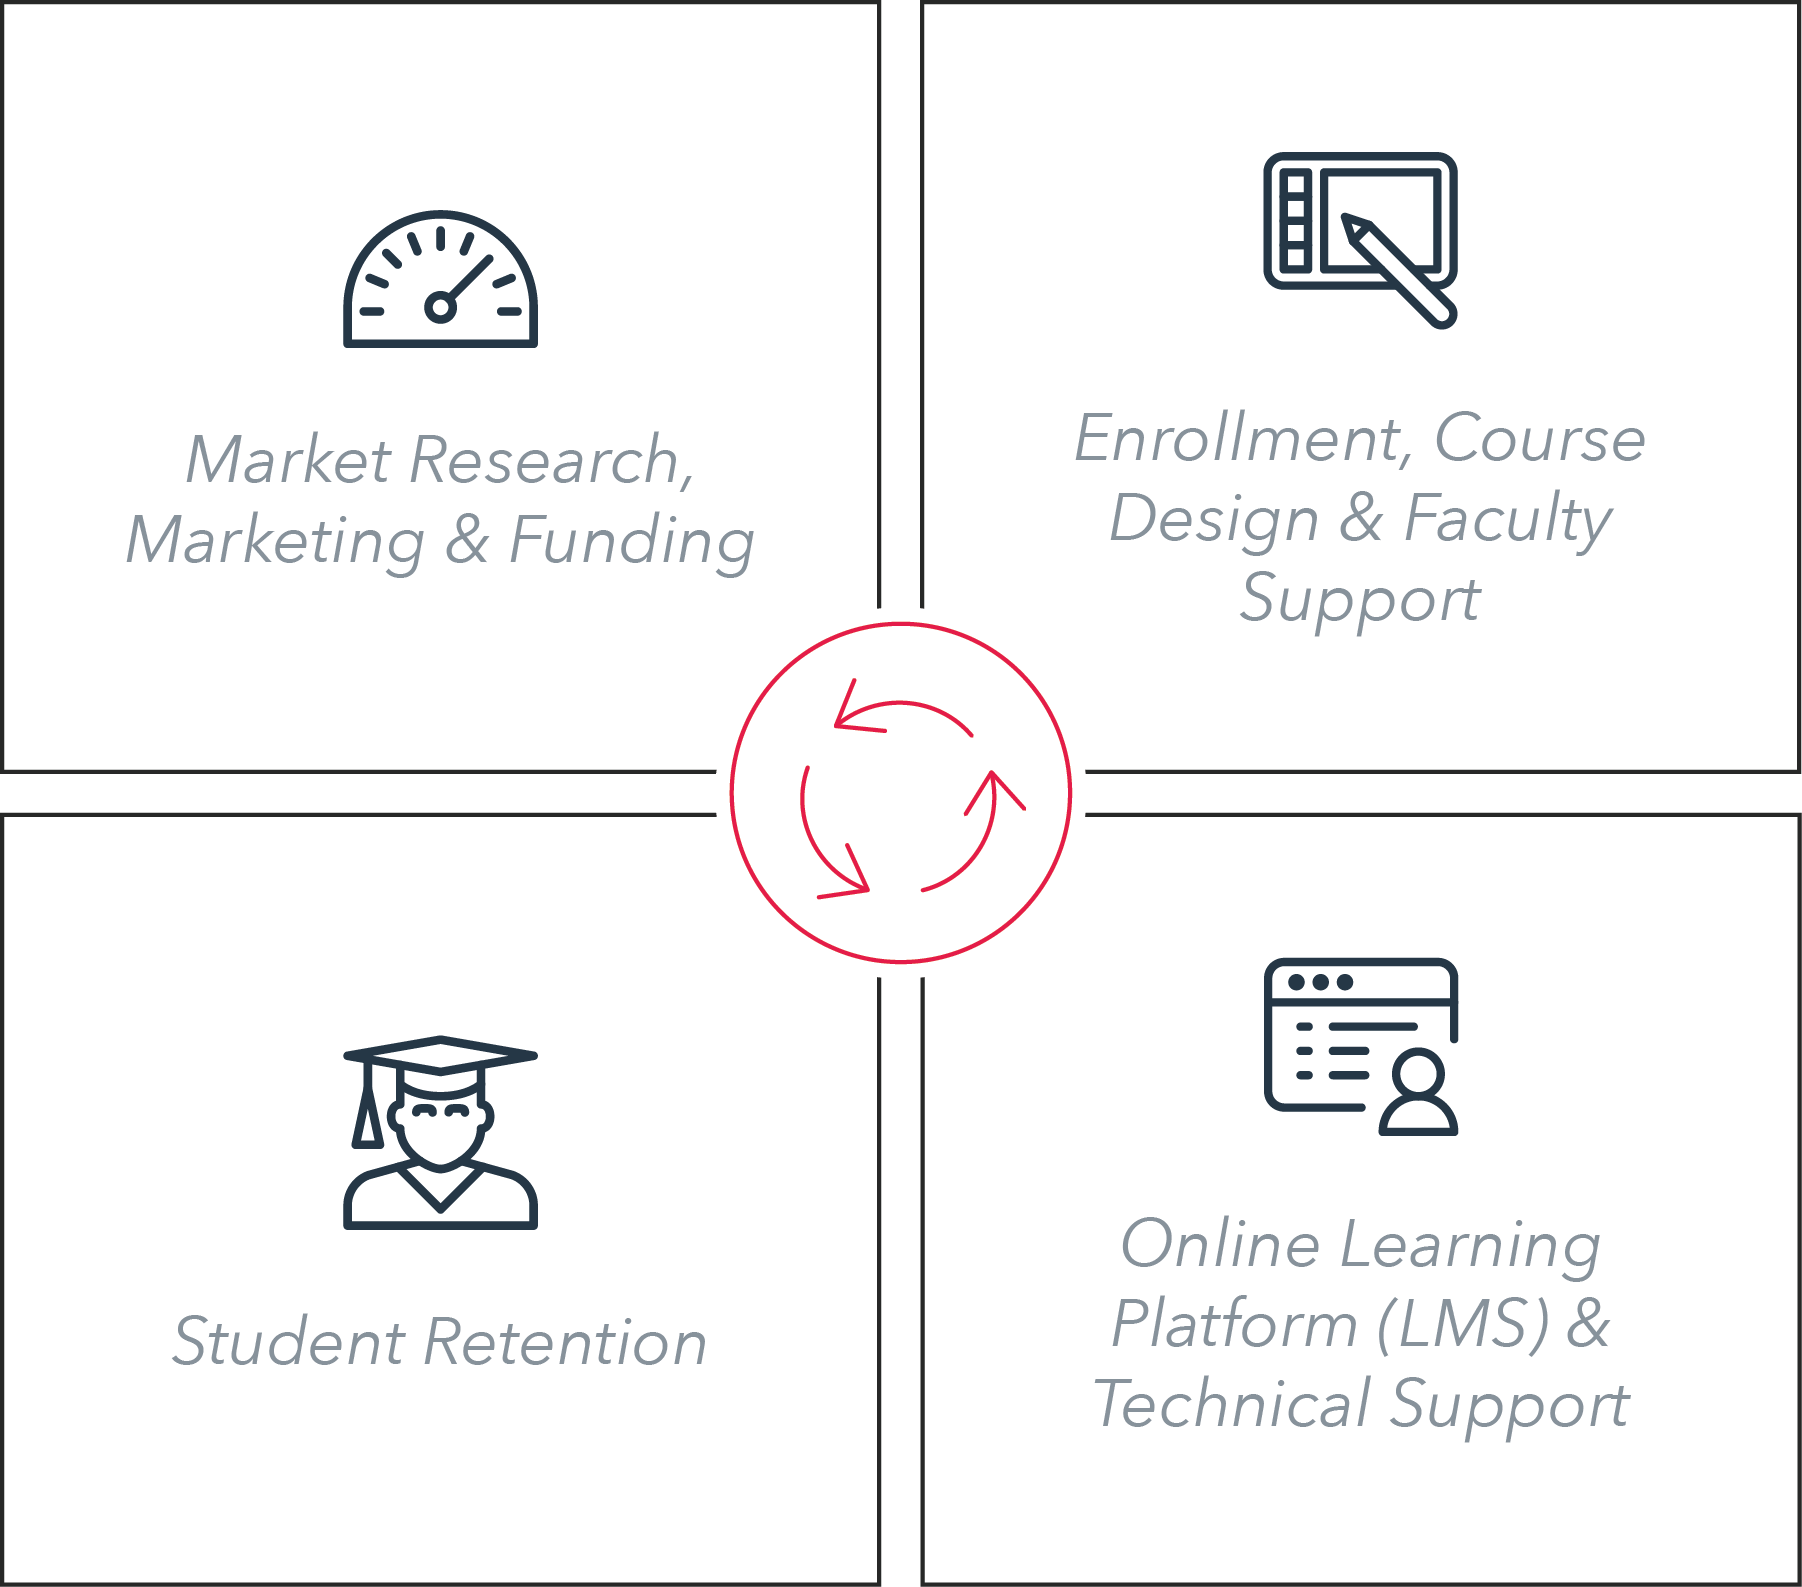 Journey map through Marketing, Enrollment, LMS and Student Retention